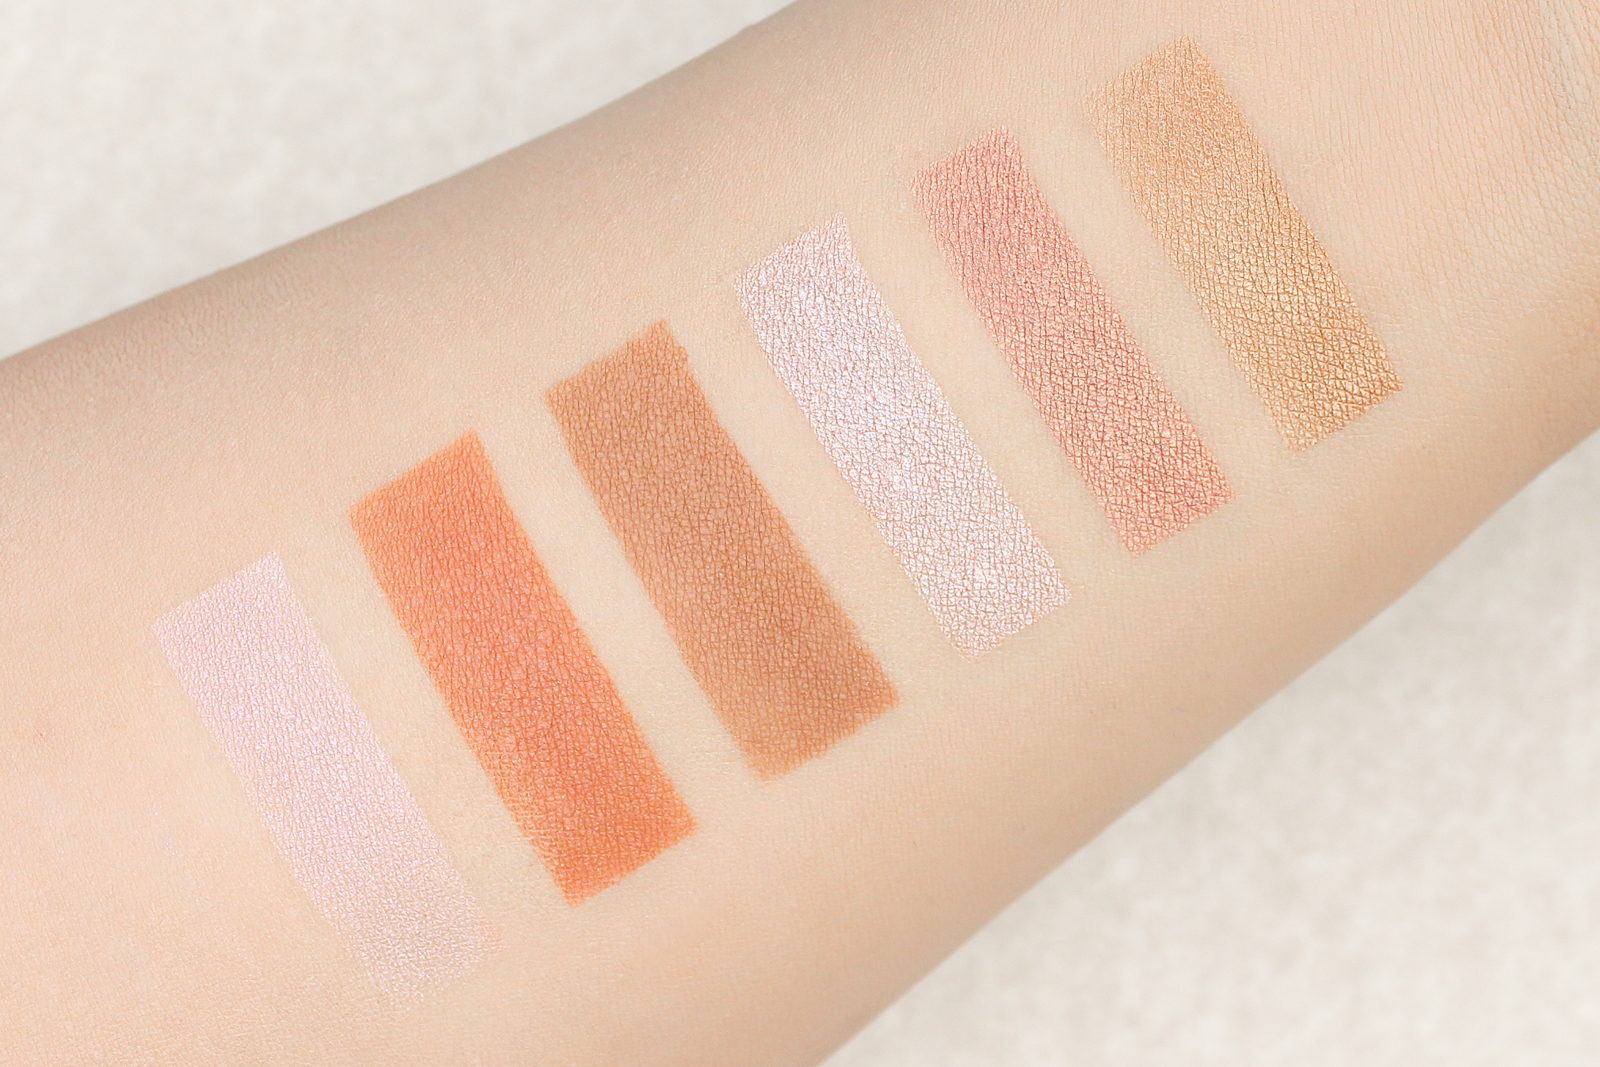 The Nubian Eyeshadow Palette by Juvia's Place #7